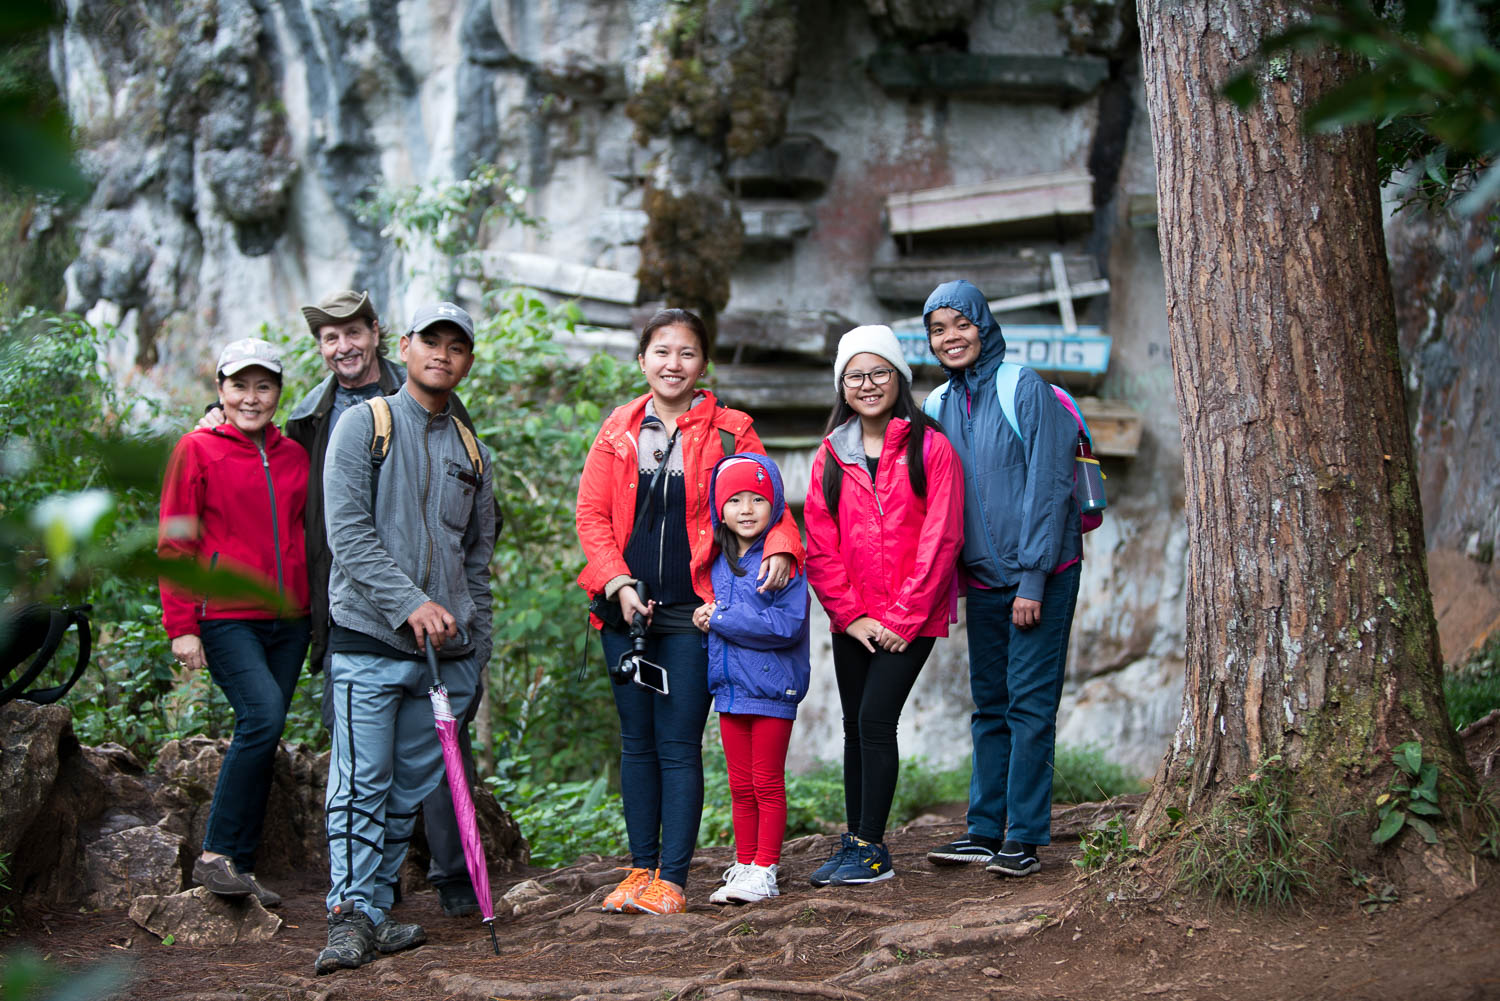 The Get Lost crew for this particular trip, including our local Sagada guide Vhestre Bagni. Not in photo is my husband and photographer / cinematographer extraordinaire, Miguel Olfindo. So proud of him for taking on not just one but two hikes in one day!